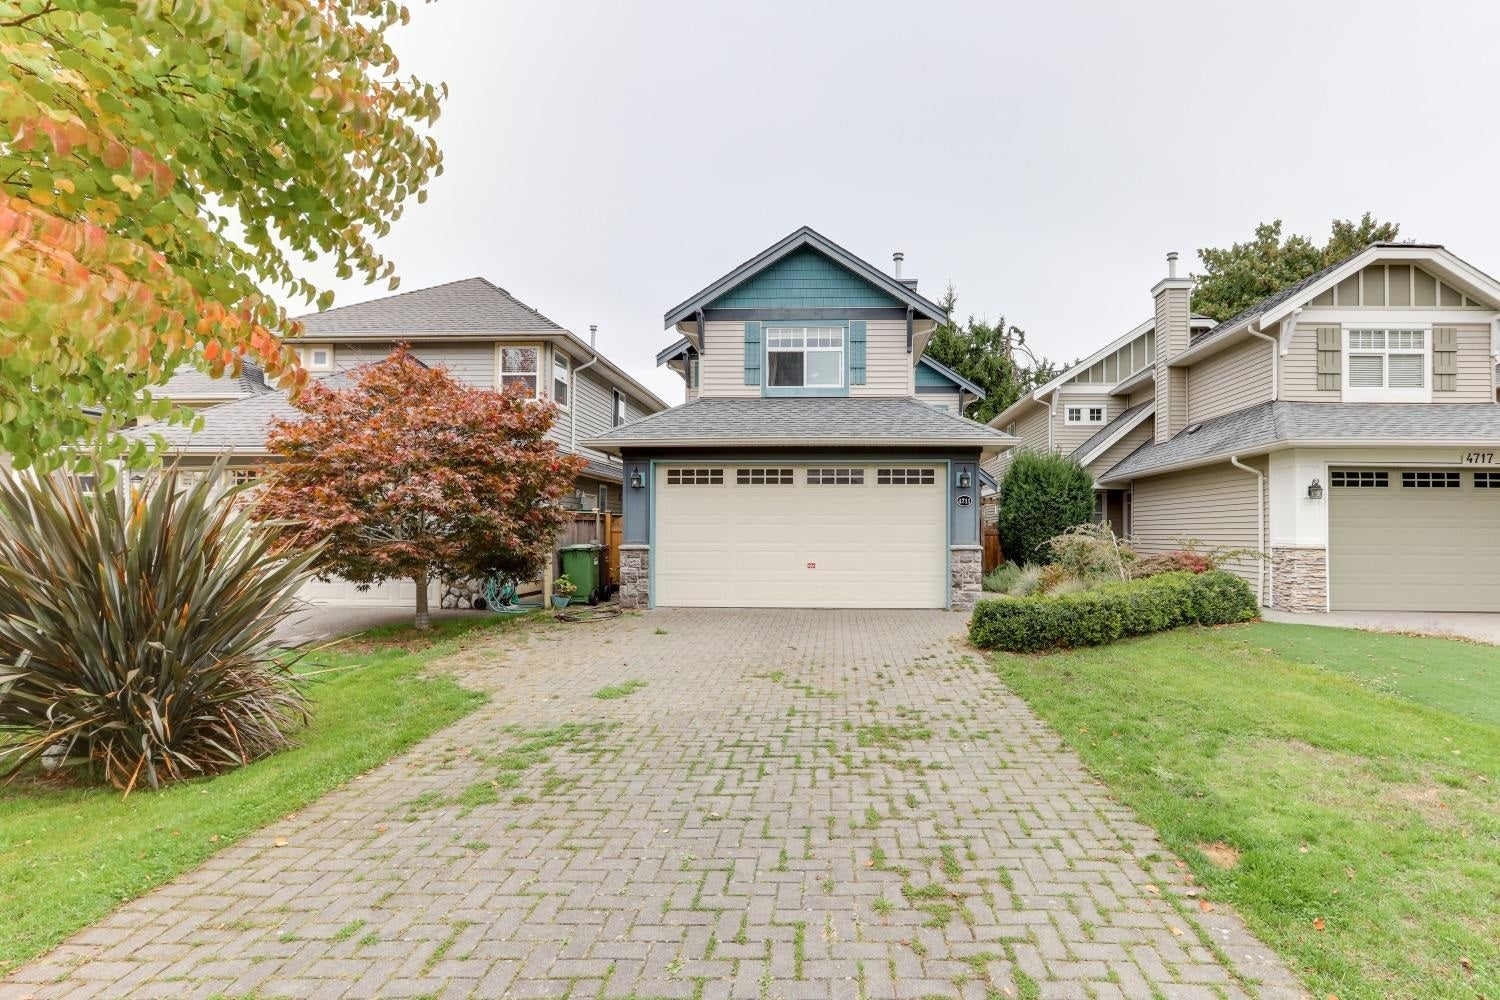 4711 DUNCLIFFE ROAD - Steveston South House/Single Family for sale, 4 Bedrooms (R2620775)